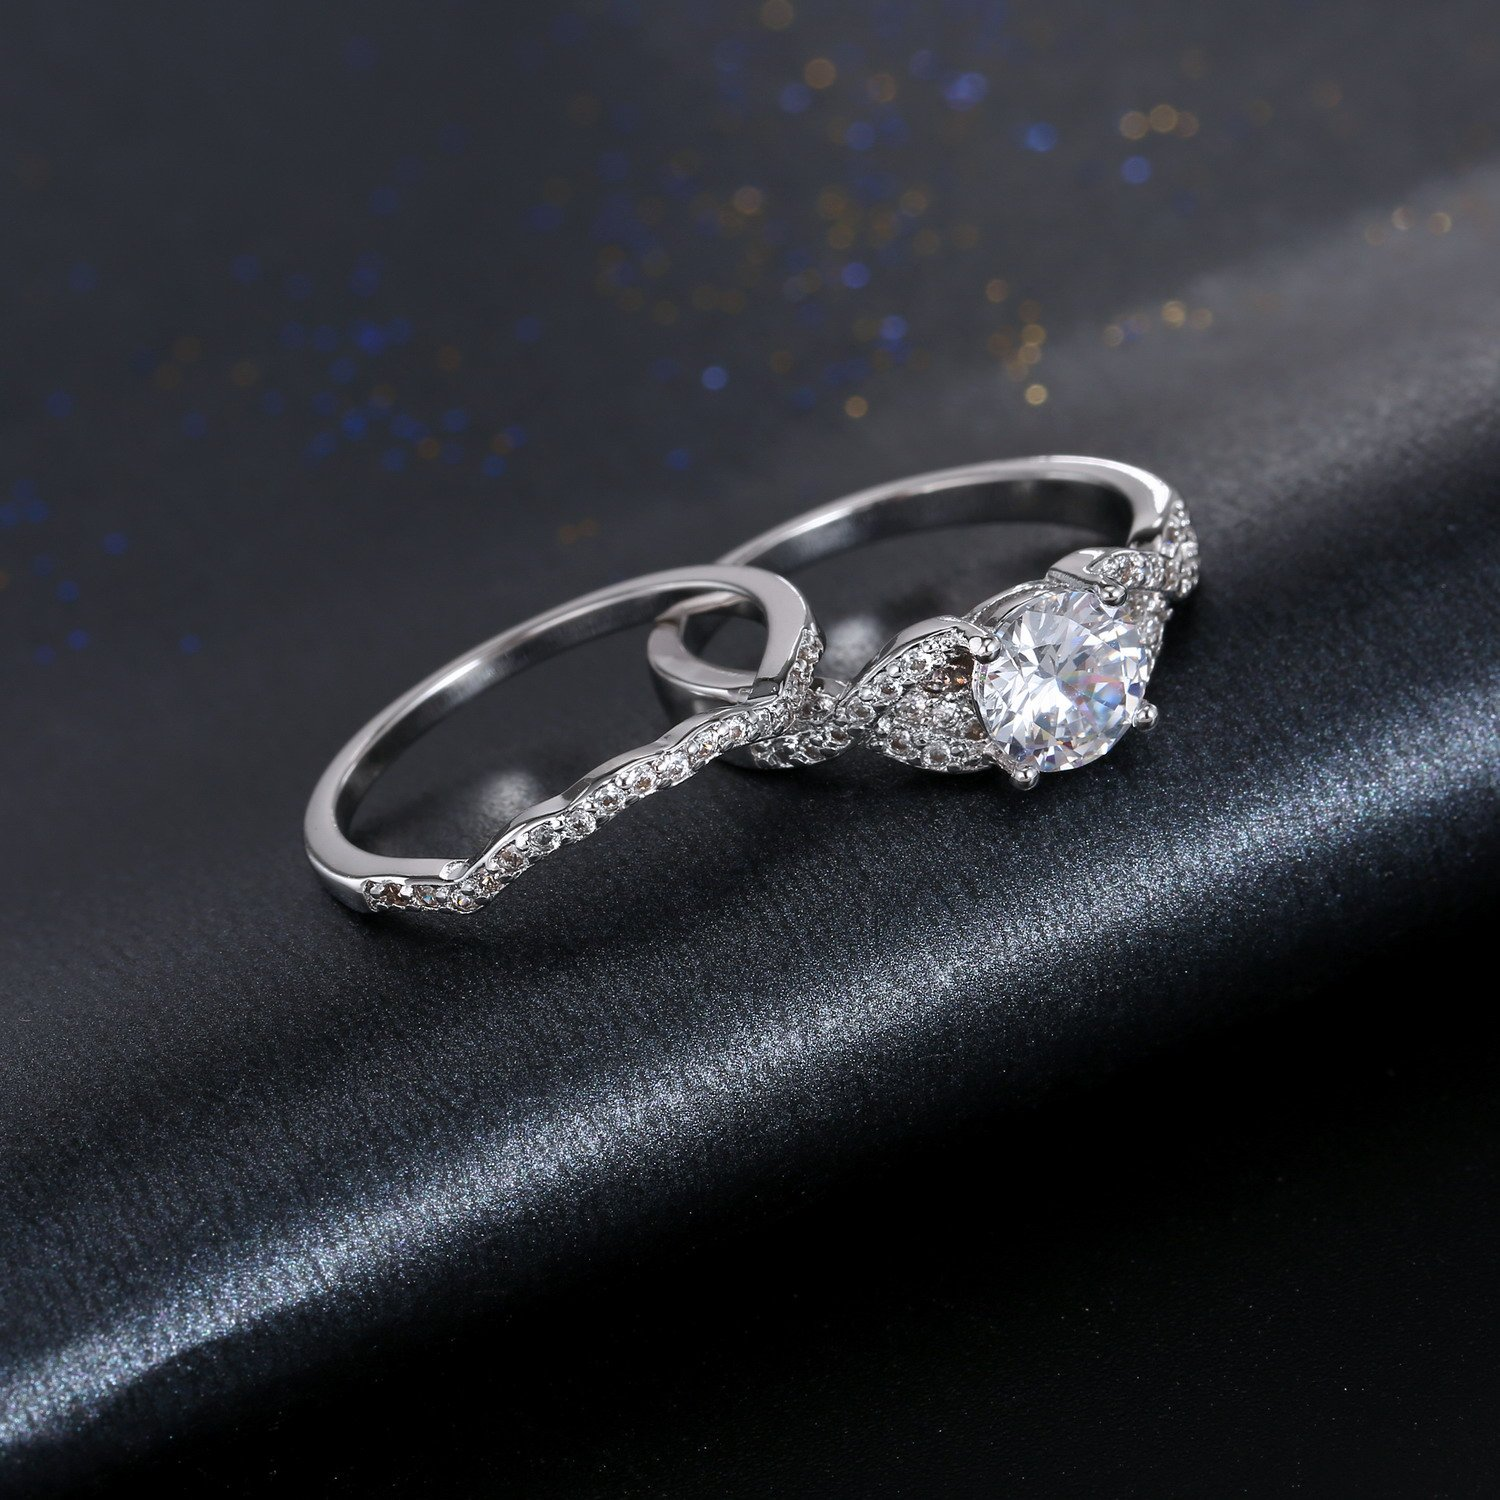 Diamond Cut Infinity Band Rings - Round Radiant Cubic Zirconia Women Wedding Band Ring Set Size 6-9 (11) by Hiyong (Image #8)